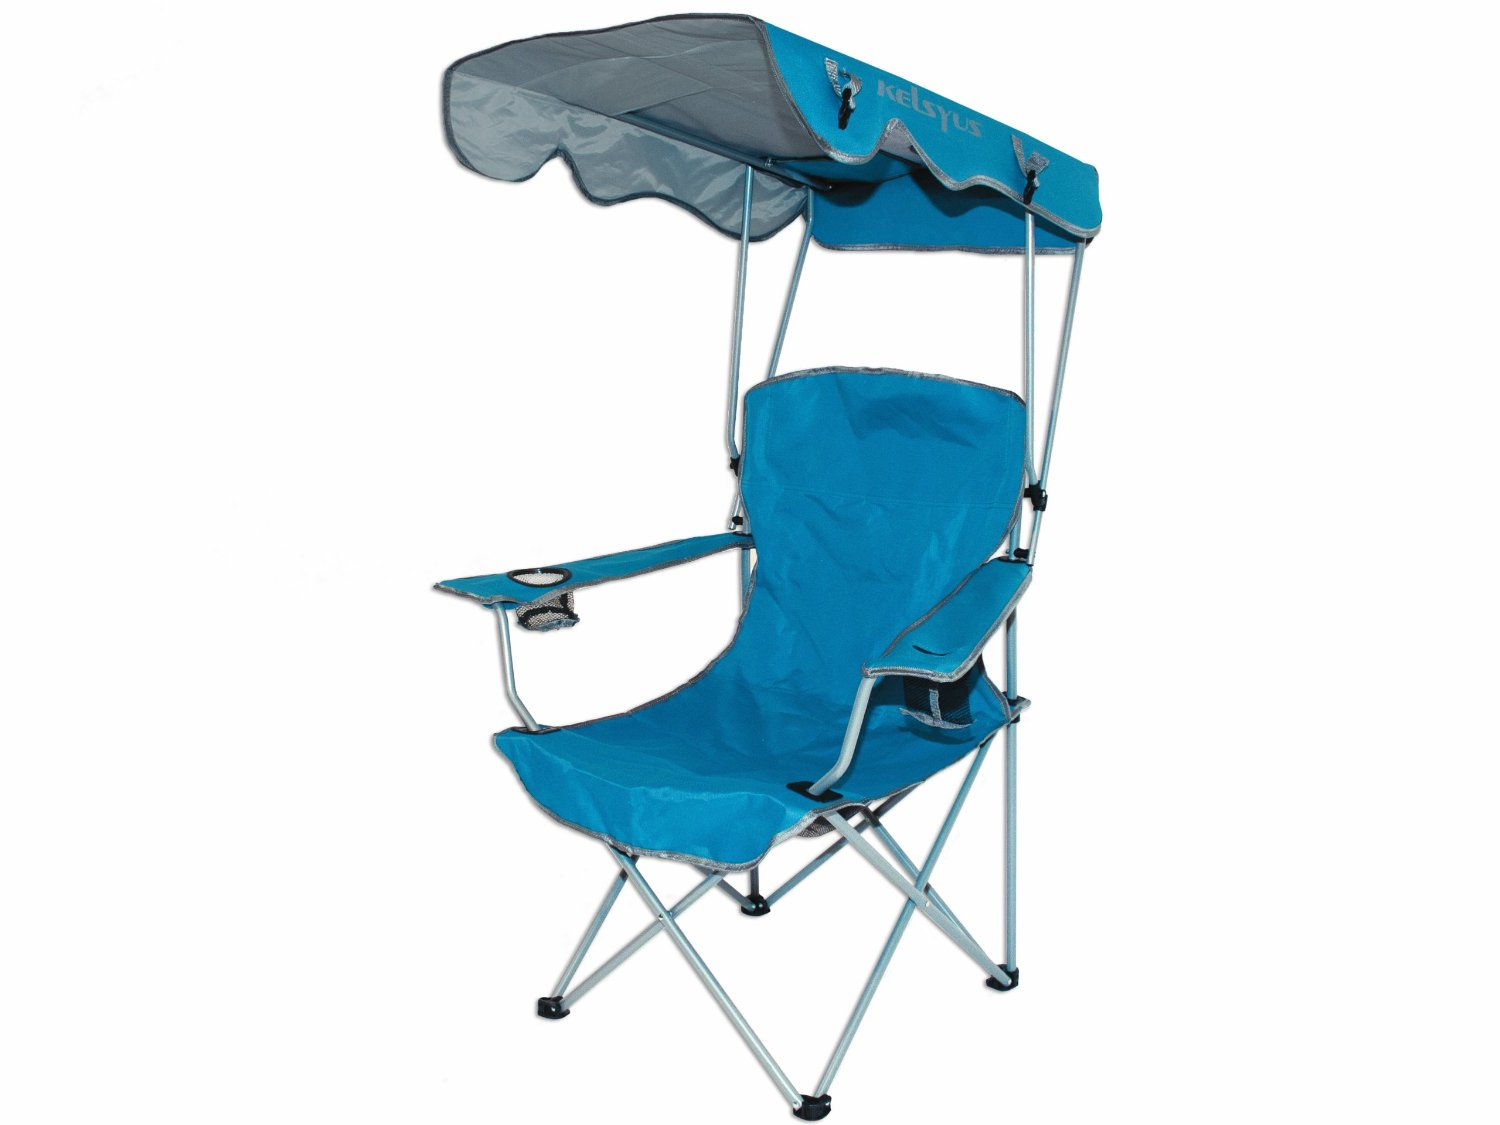 Beach umbrella review for Lawn chair with umbrella